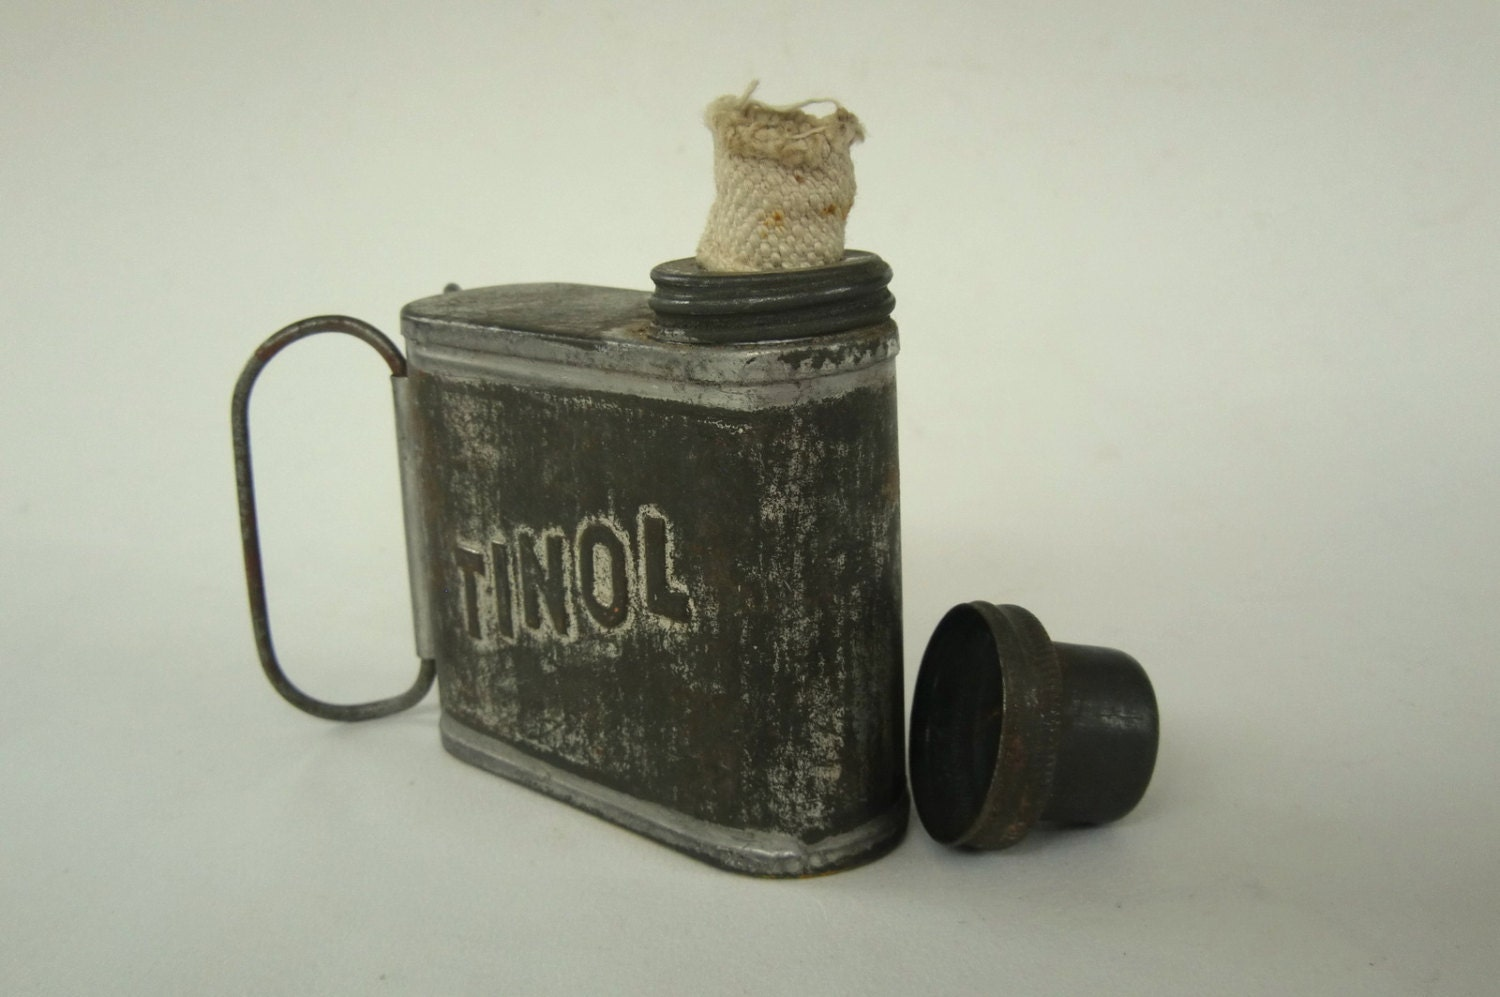 Vintage Tinol Oil Lamp Ww2 German Can Burner Travelling Oil